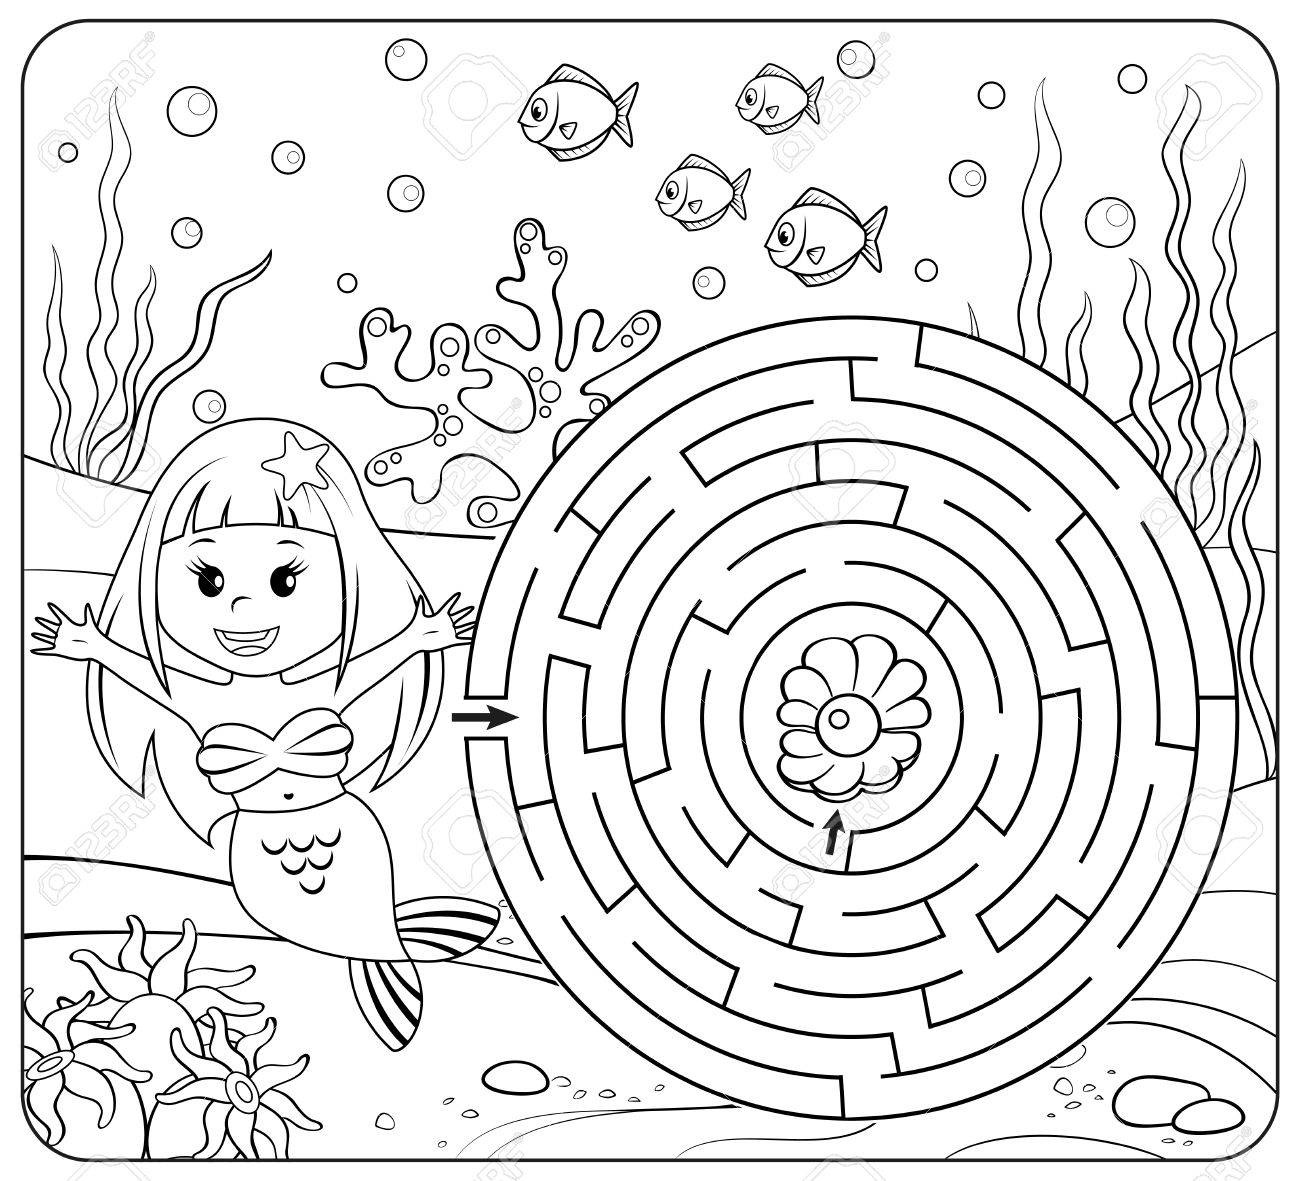 1300x1181 Help Mermaid Find Path To Pearl. Labyrinth. Maze Game For Kids